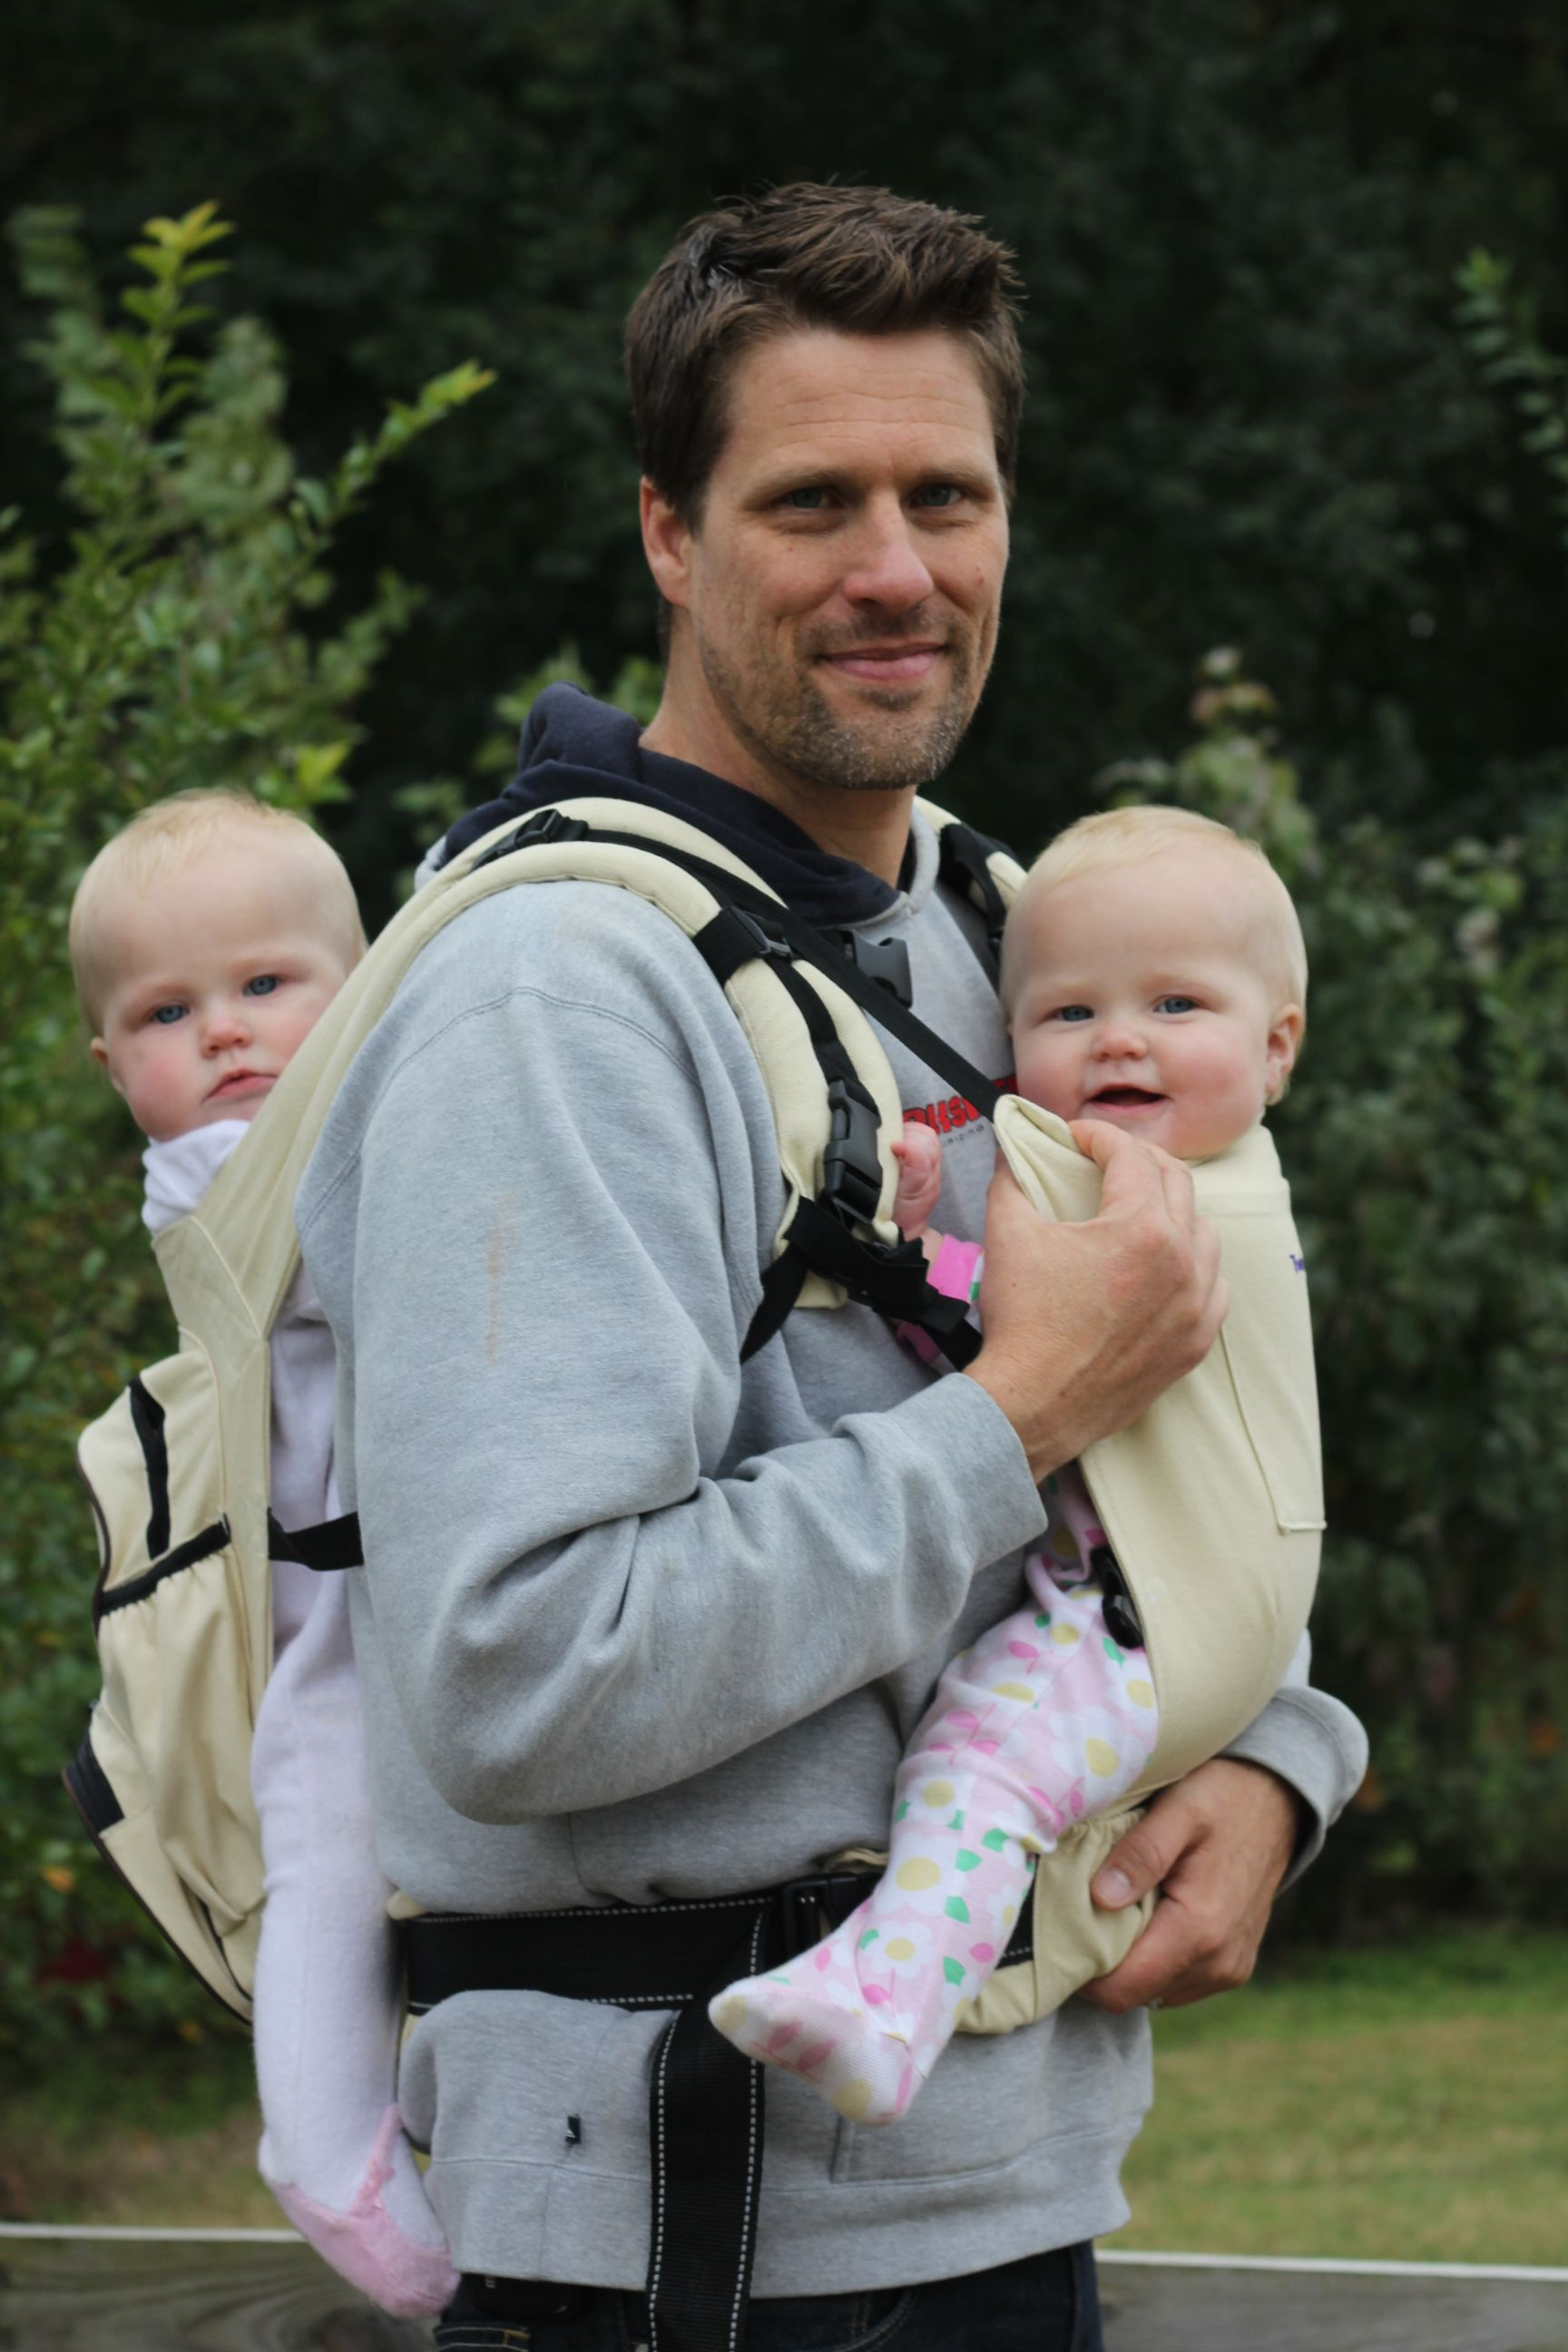 81766ae5328 Dads love the Twingaroo  twin baby carrier!